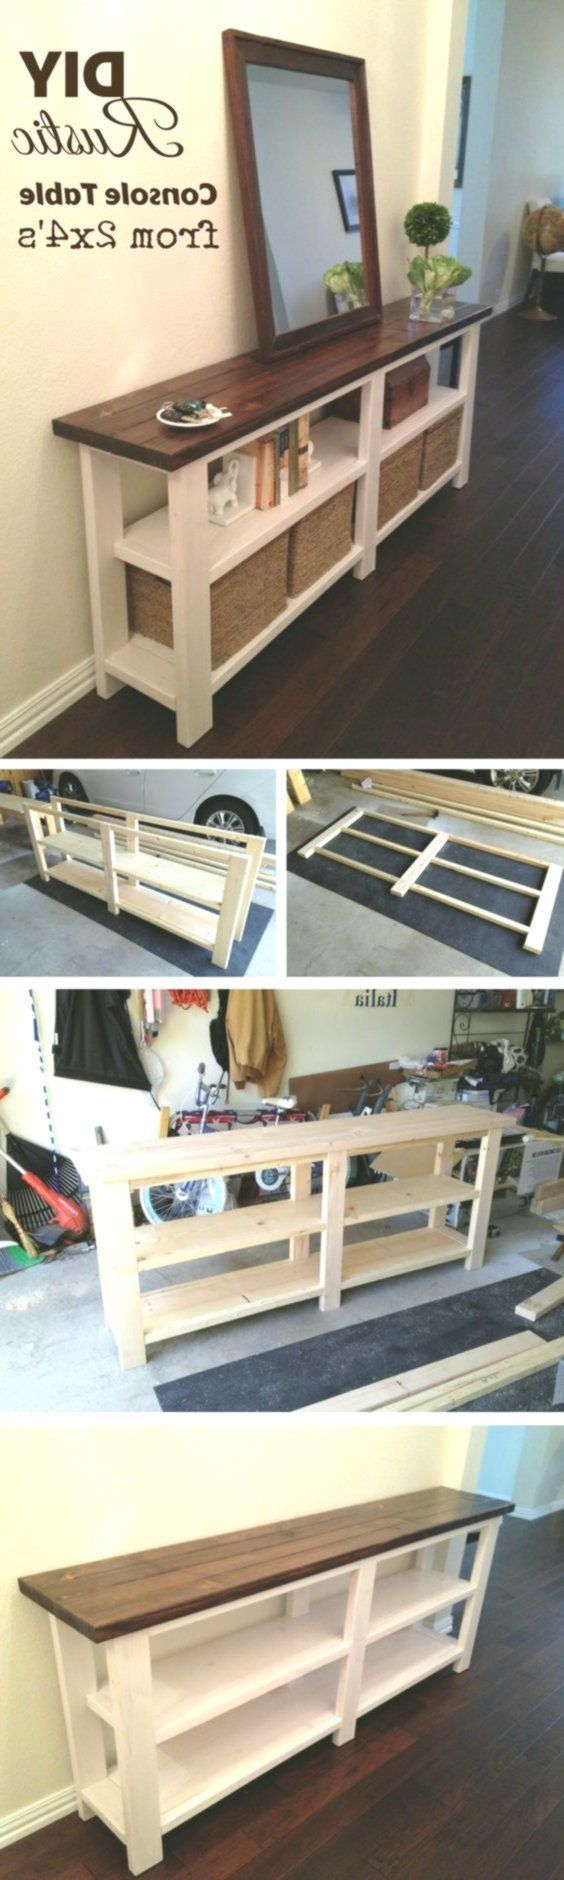 See how you unite rustic DIY console table # hallway furniture #design #model #d…